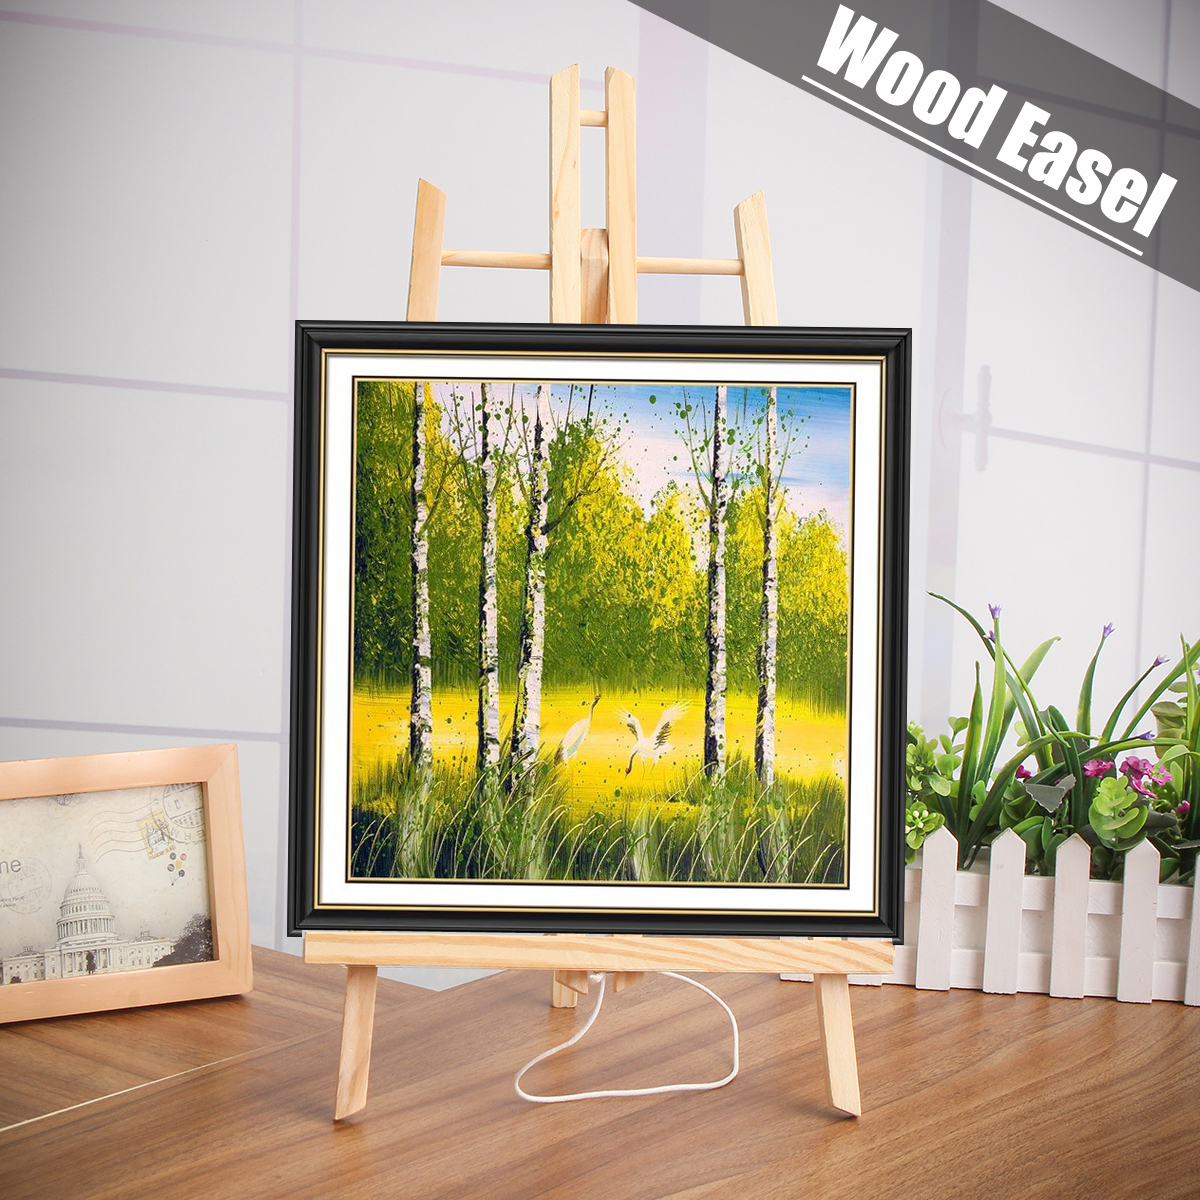 27cm*50cm A4/A3 SizeTable Artist Wooden Easel Calendar Display Rack Wedding  Card Triangle Stand Holder For DIY Party Decor27cm*50cm A4/A3 SizeTable Artist Wooden Easel Calendar Display Rack Wedding  Card Triangle Stand Holder For DIY Party Decor